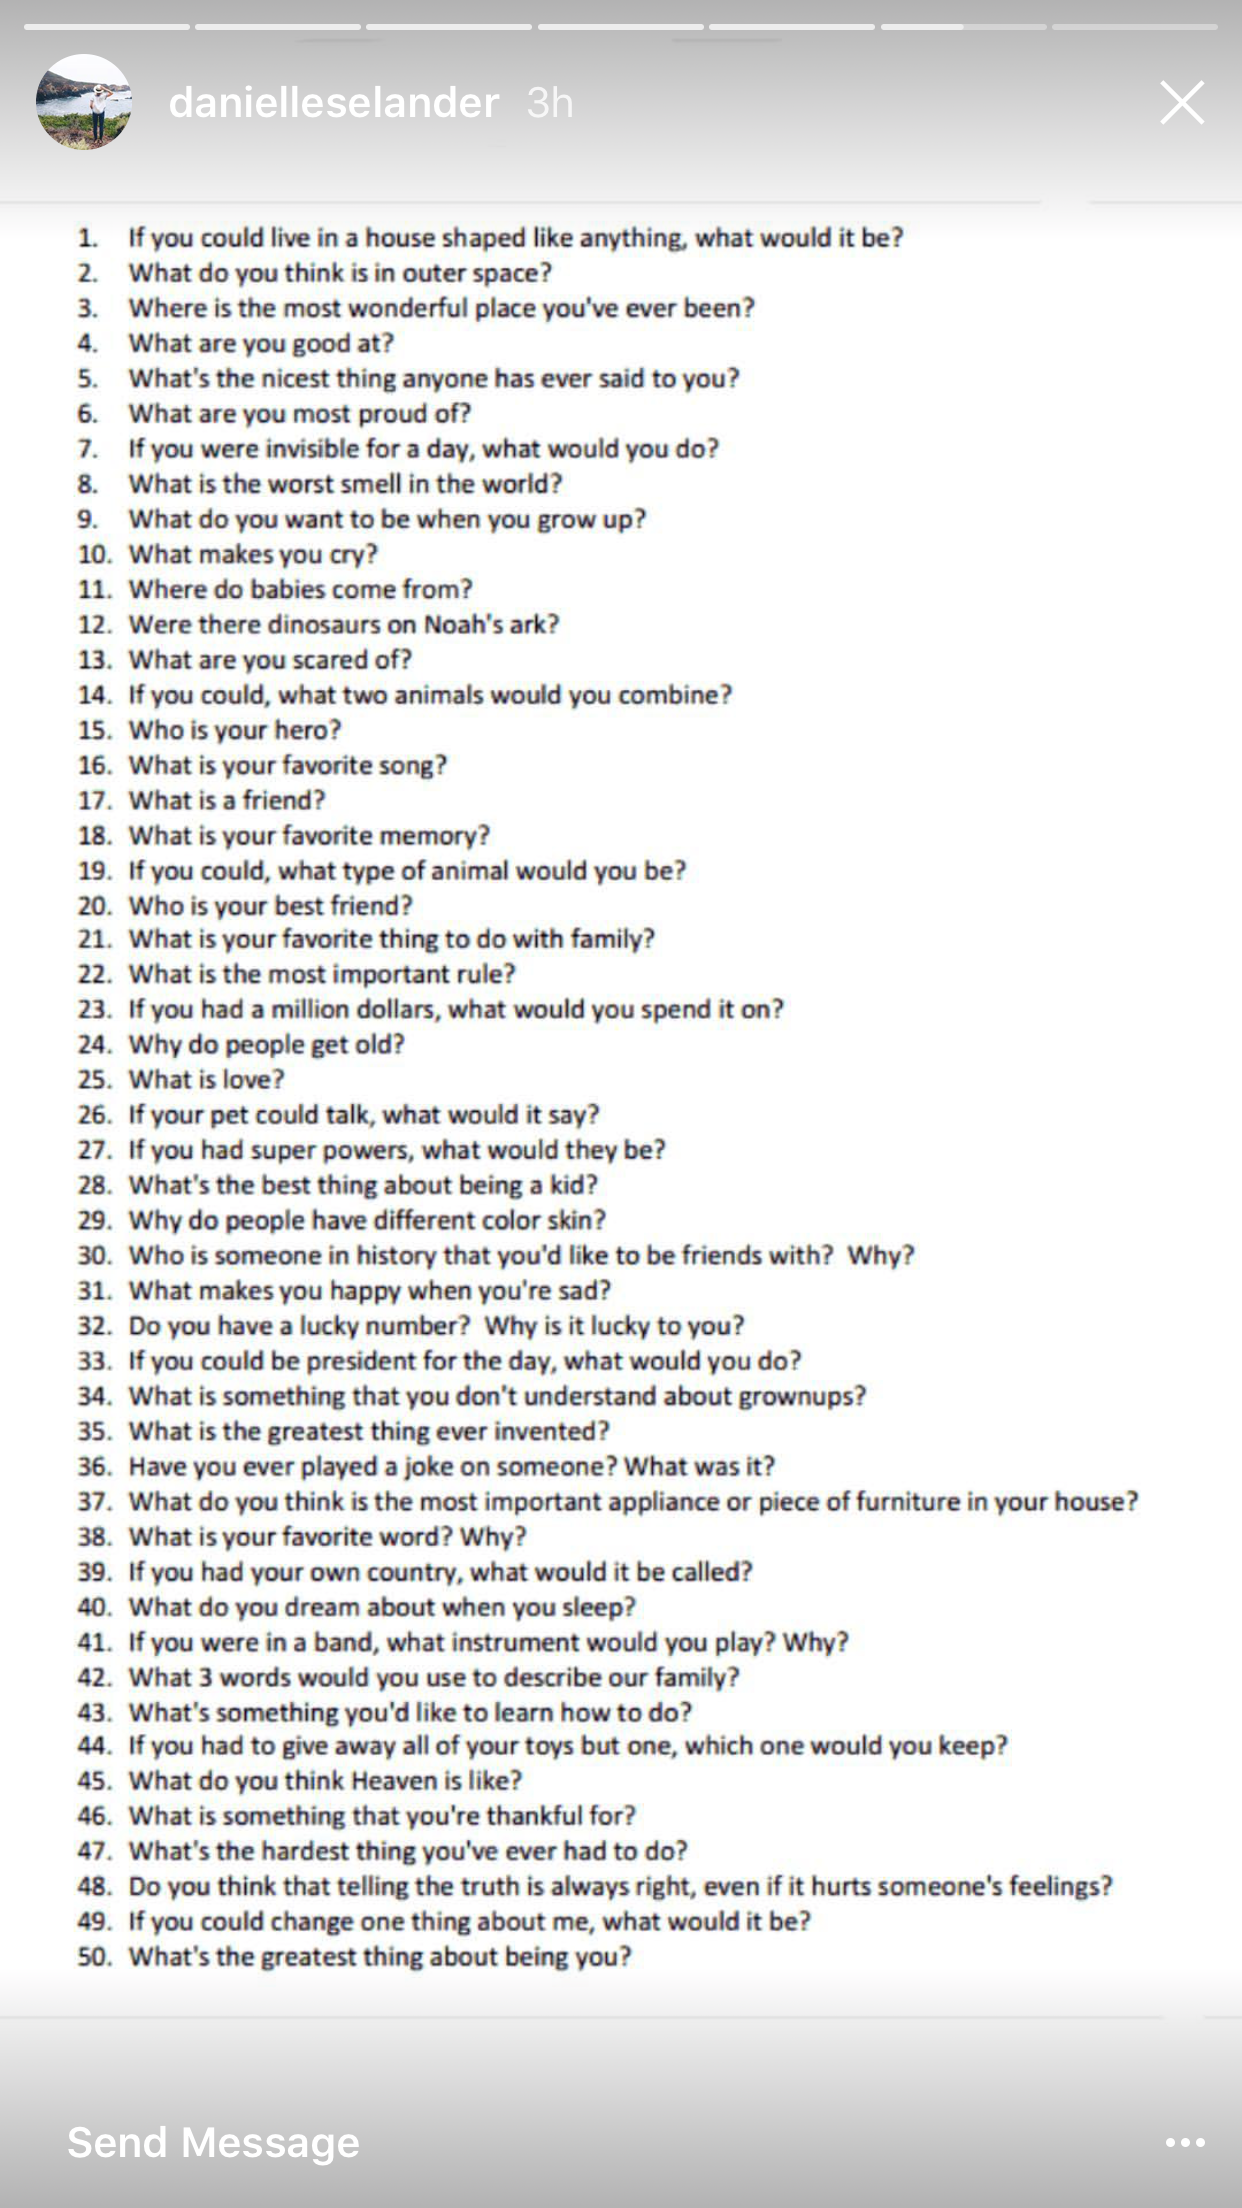 Get To Know You Questions